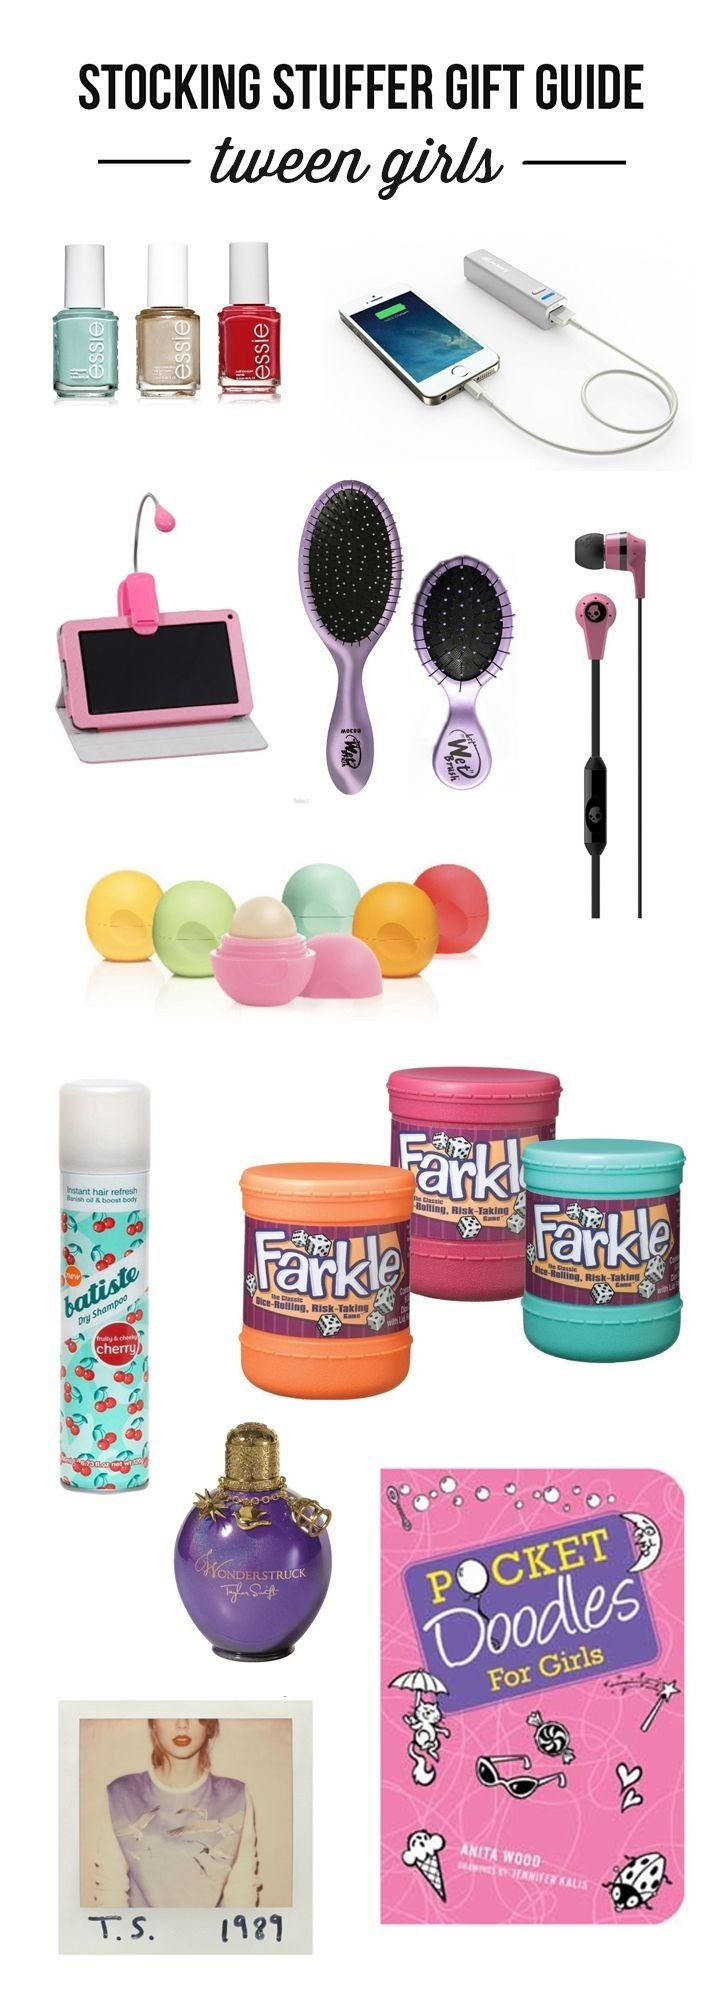 10 Attractive Tween Gift Ideas For Girls 154 best teens images on pinterest bricolage gift ideas and 1 2020